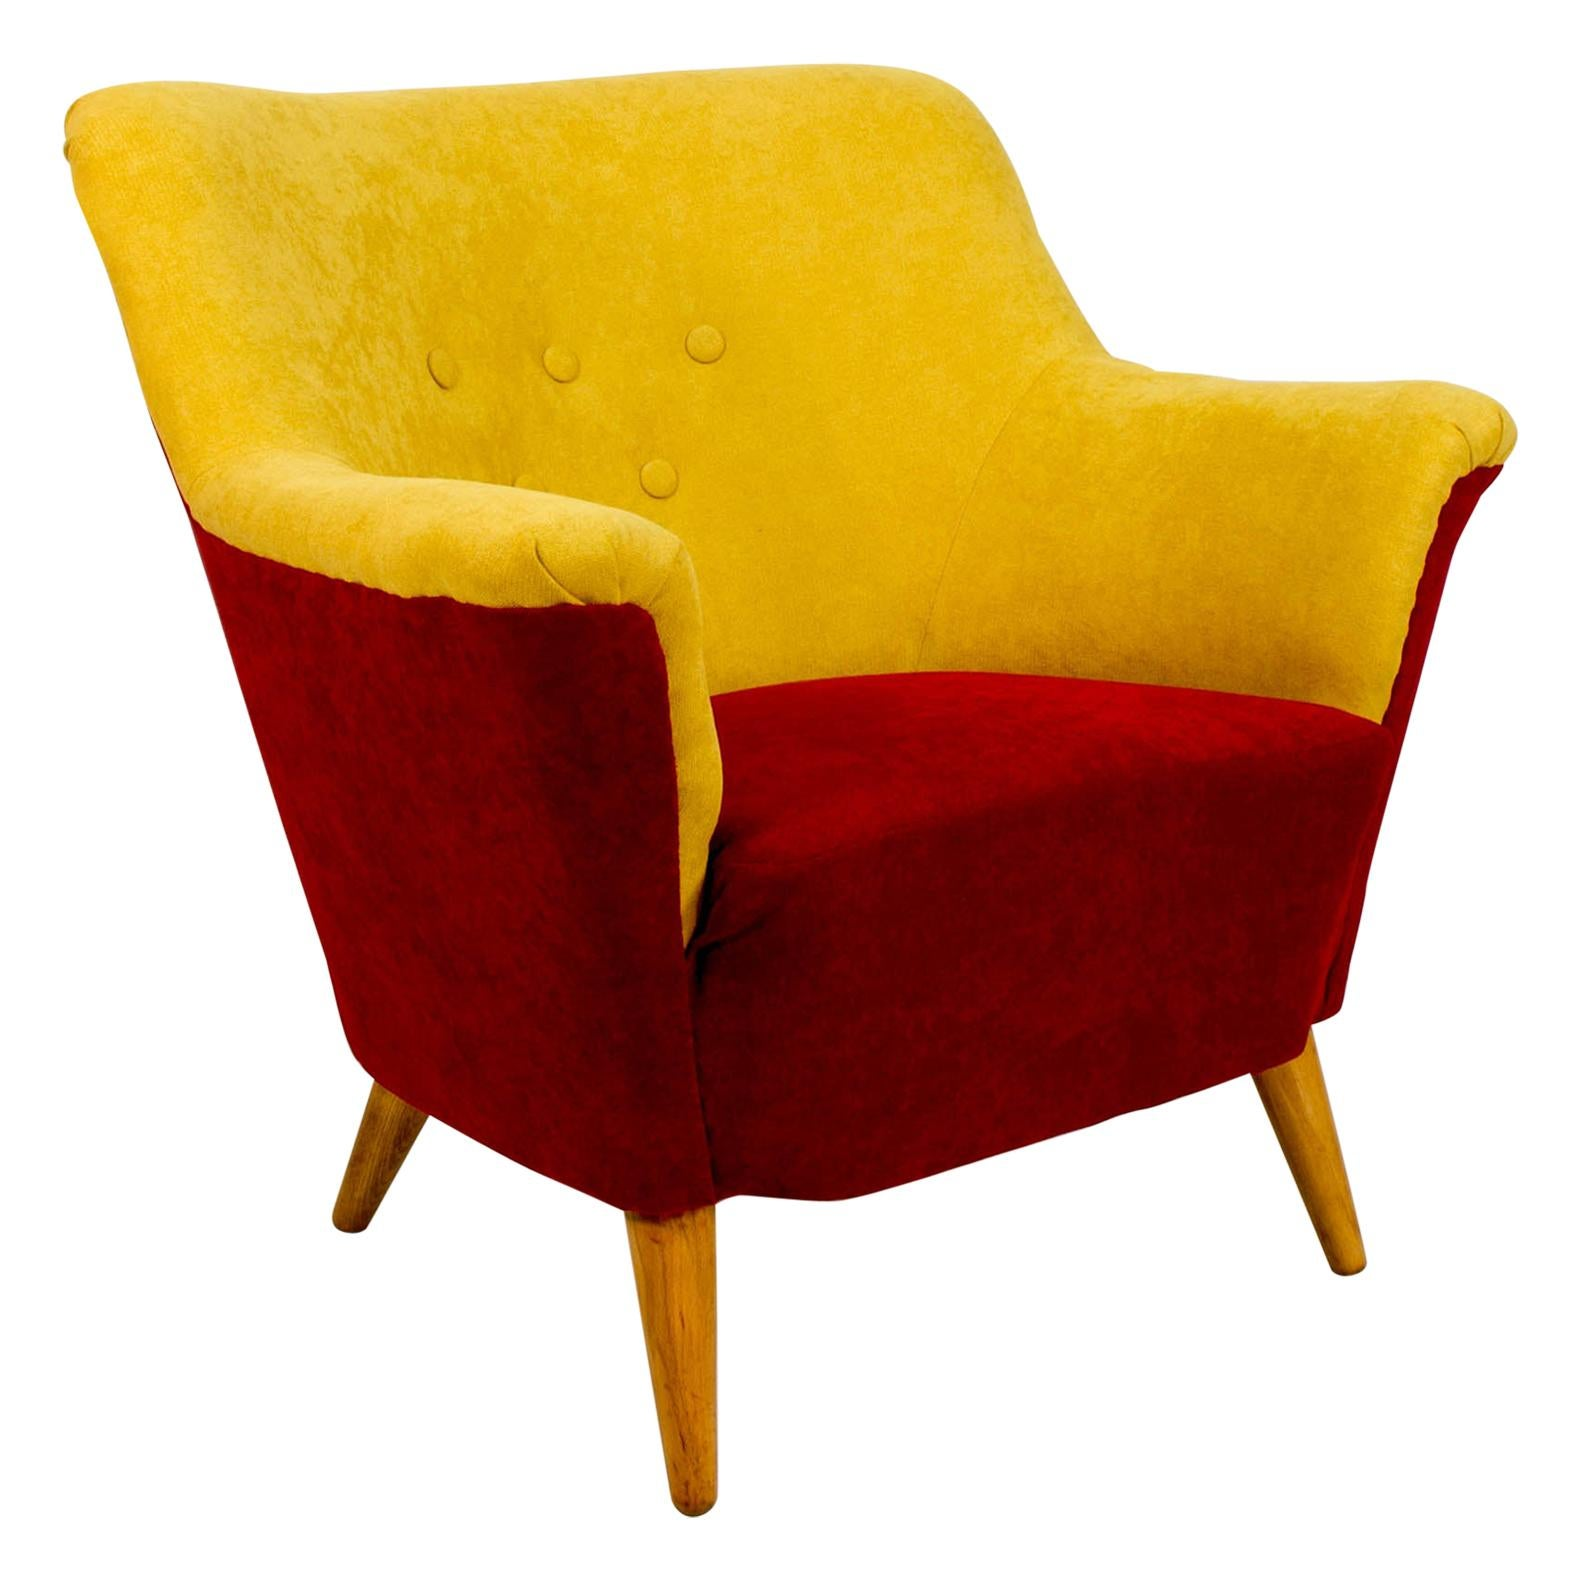 Club Armchair in Red and Yellow, 1930